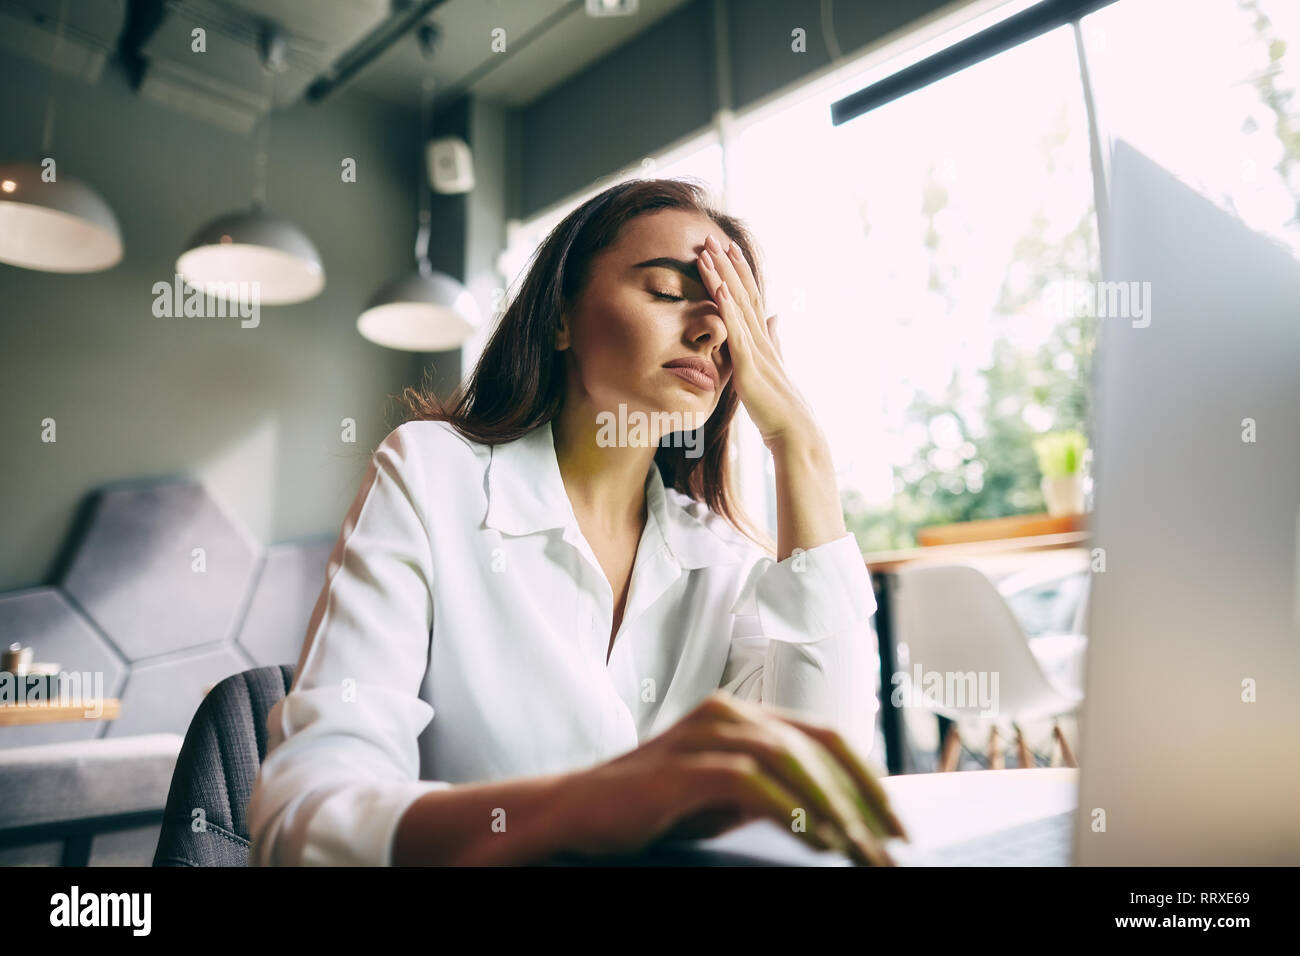 Attractive girl in white shirt working in cafe with gray laptop, online shopping concept, freelance work in progress, work from home, failed, sad emot - Stock Image